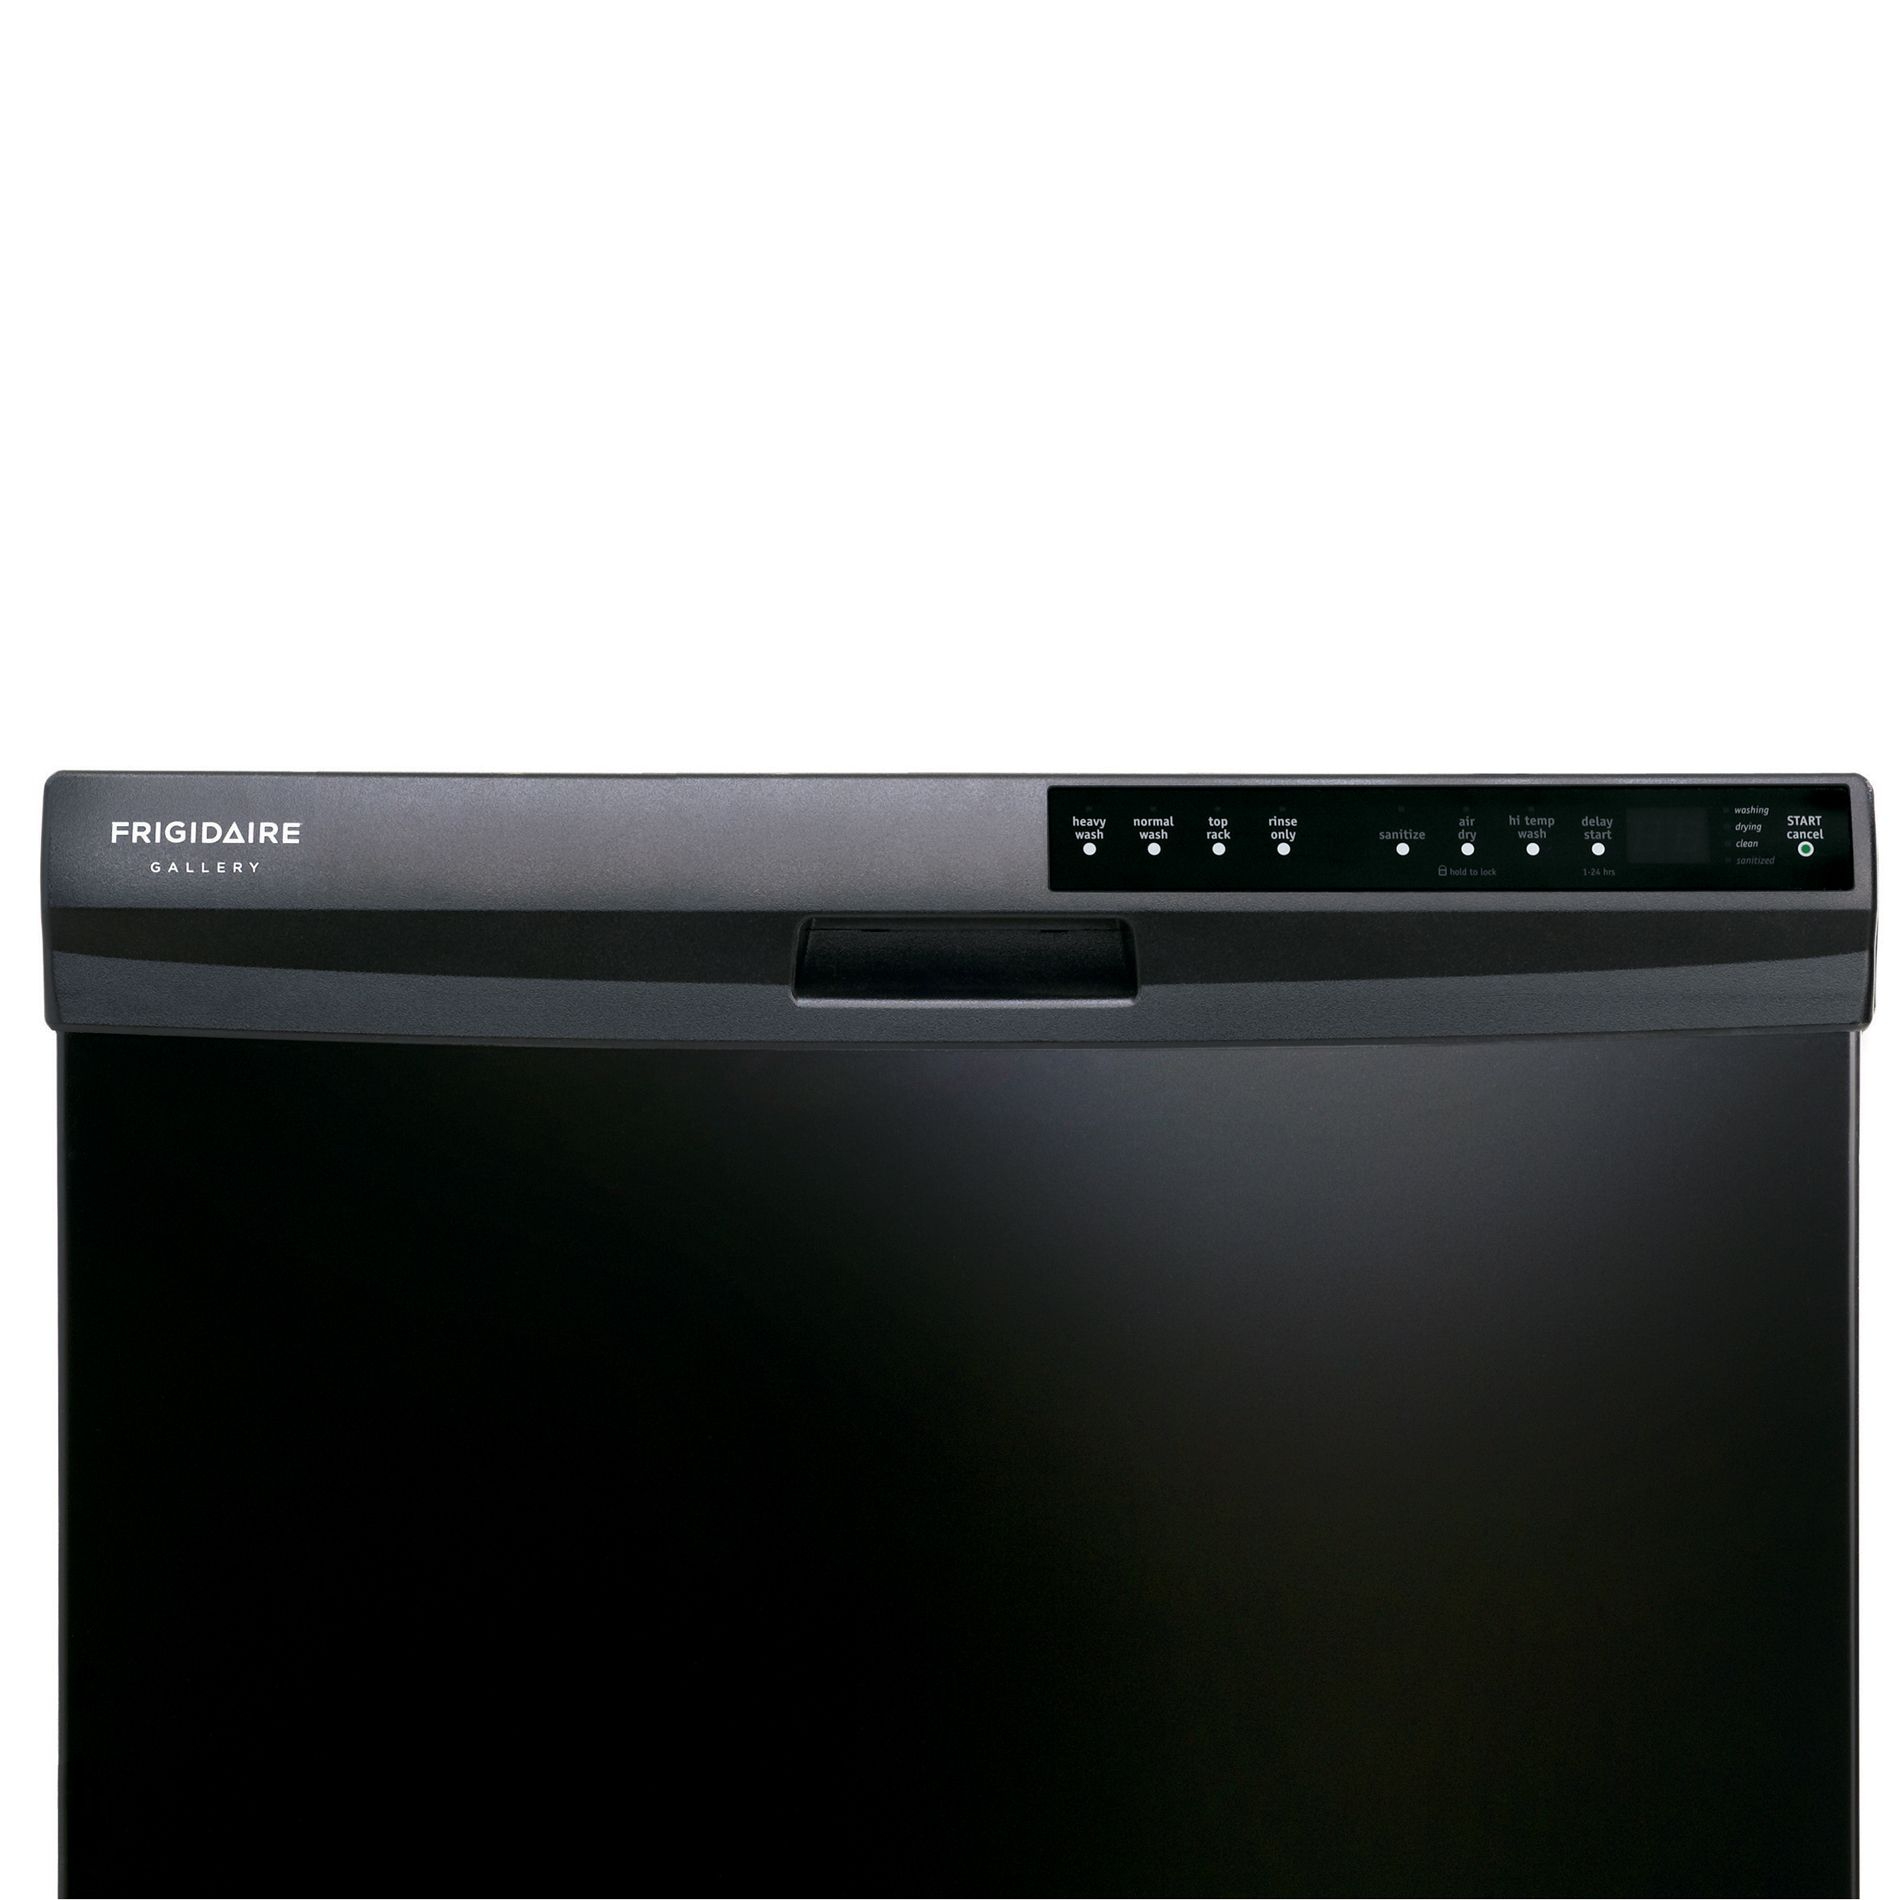 Frigidaire 24'' Built-In Dishwasher - Black